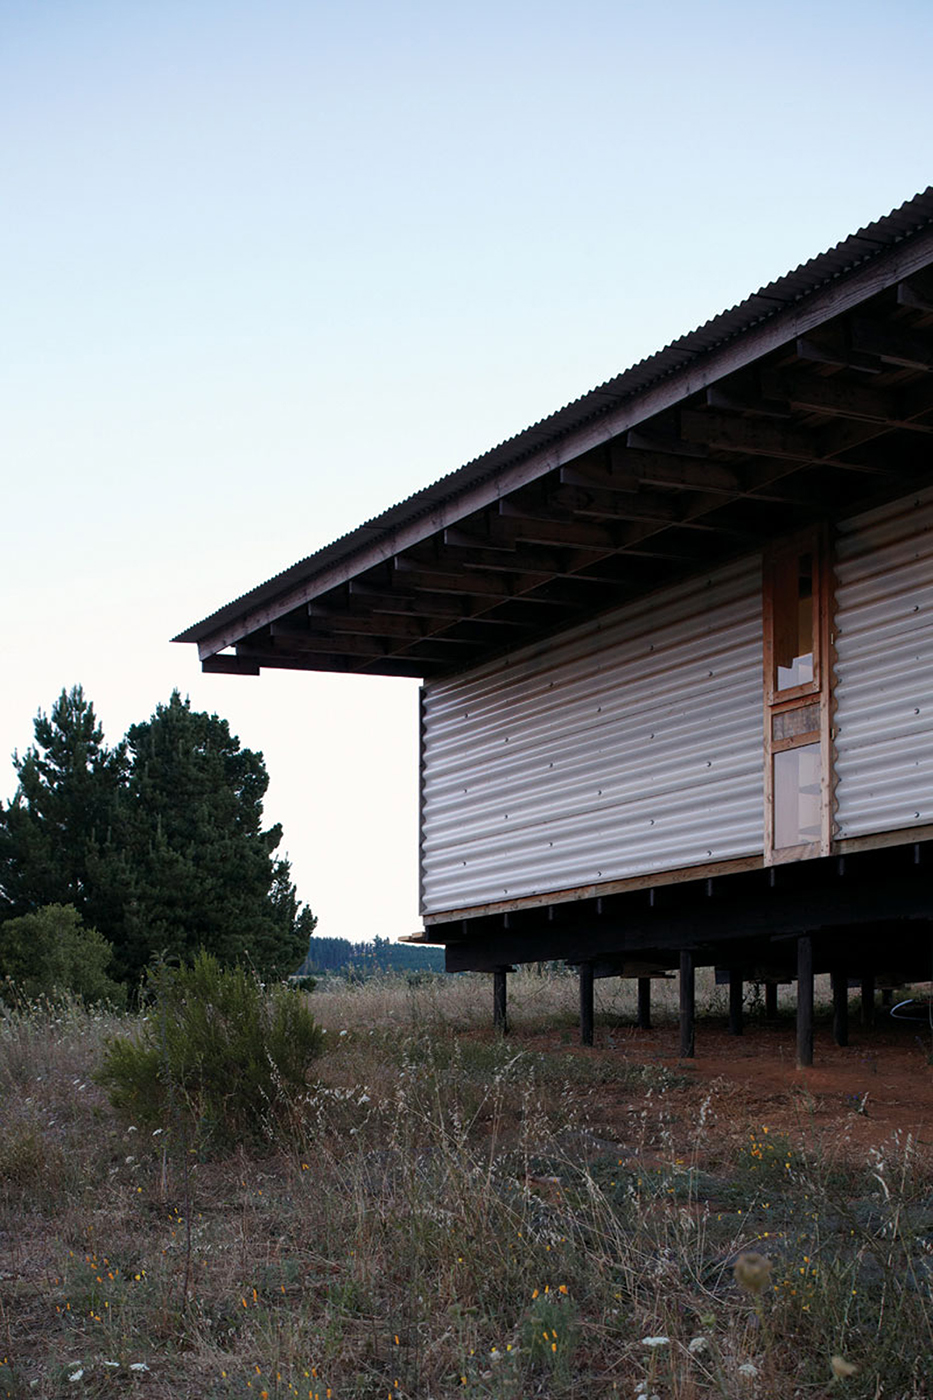 Eduardo Castillo, Gallinero House, 2000-2007, 110m2. Florida, Concepción, Chile. Exterior, pine, and corrugated PVC. Photo: Cristobal Palma, used with permission.